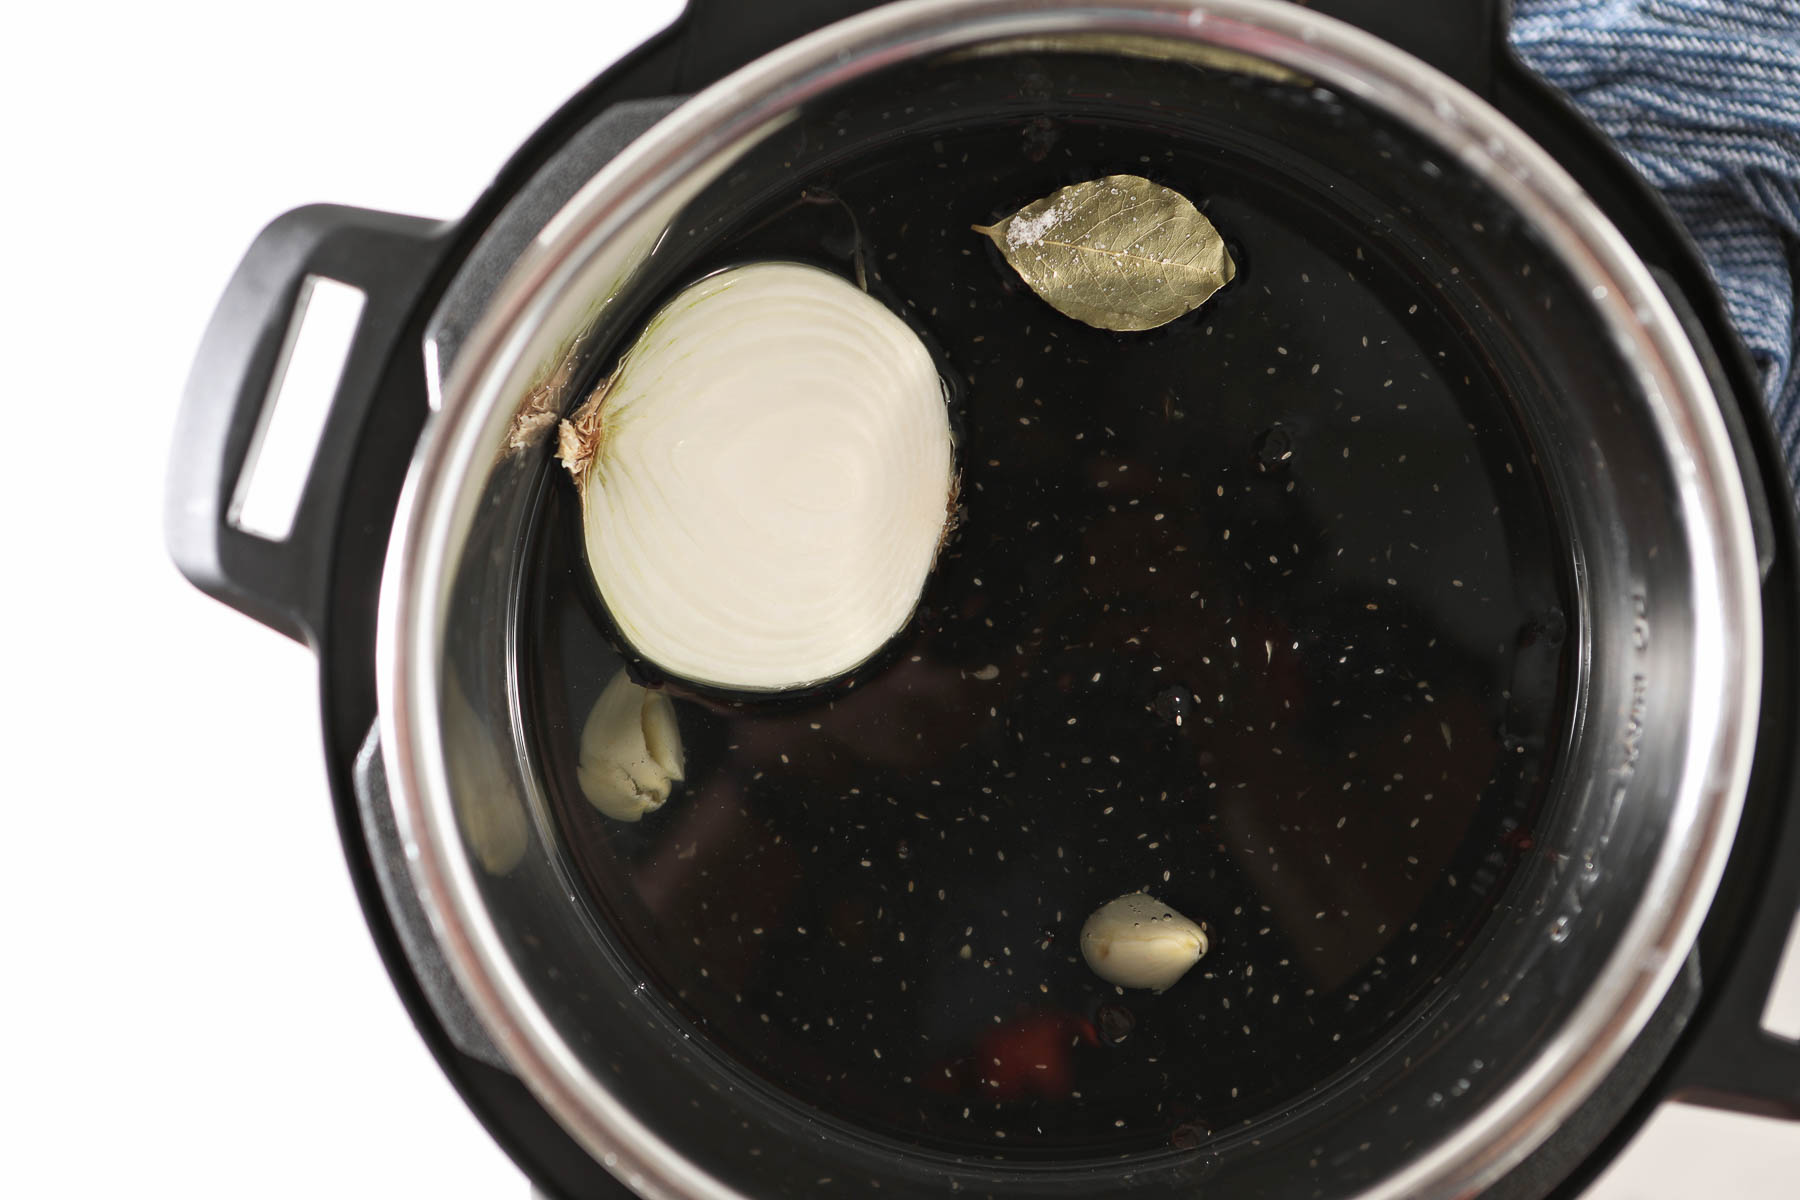 Instant pot with onion, garlic and bay leaf floating in water.